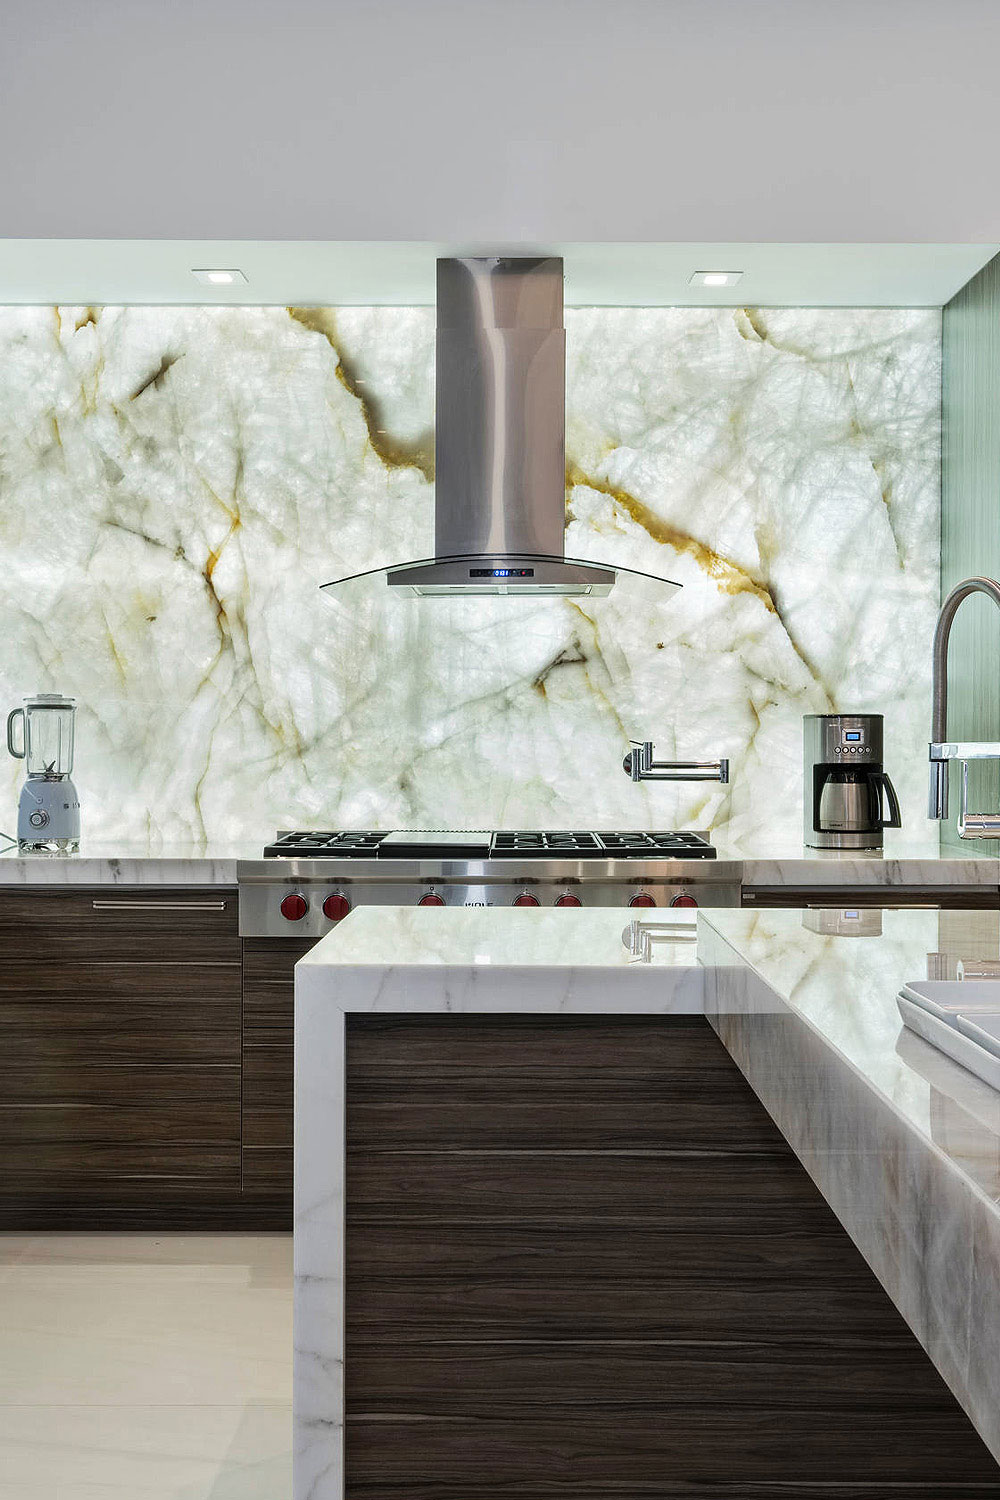 12 Onyx Kitchen Backsplash Ideas Luxury Look